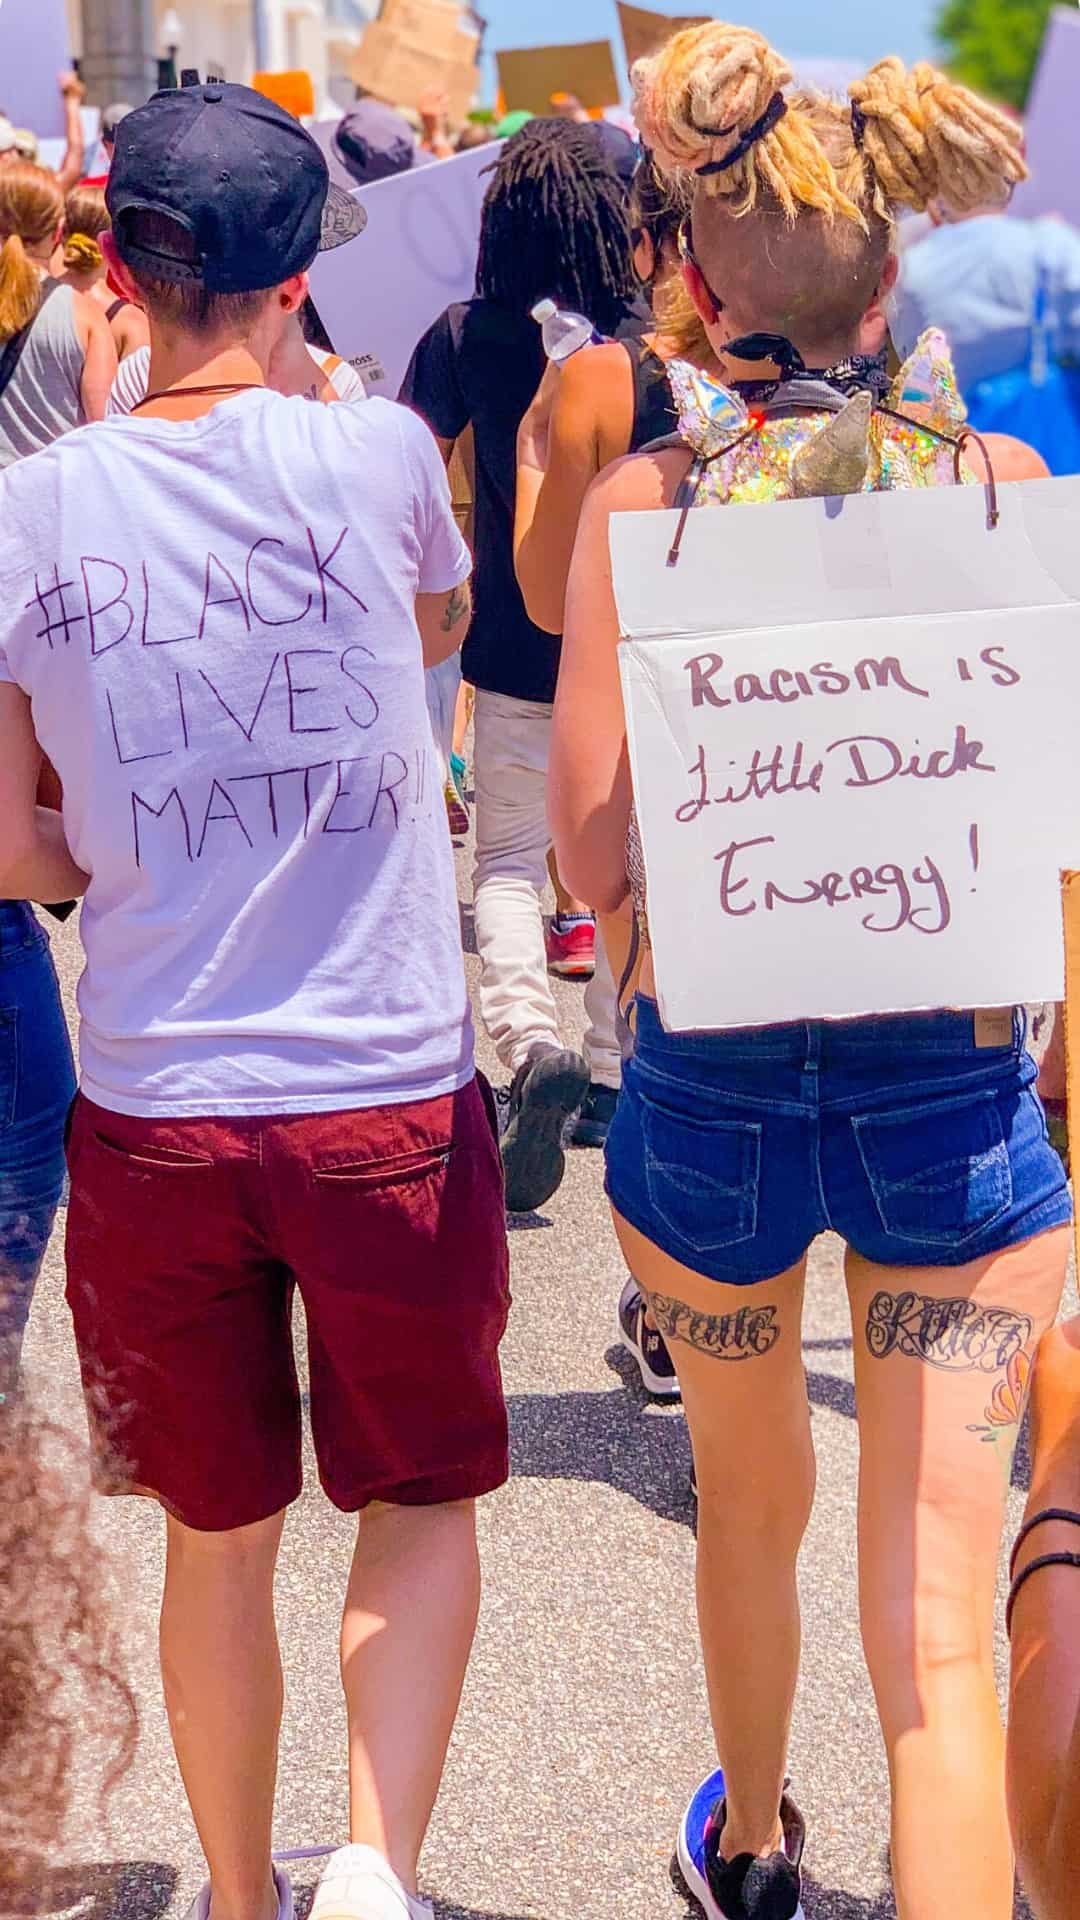 BLM Protest Signs Ideas- Racism Is Little Dick Energy protest sign